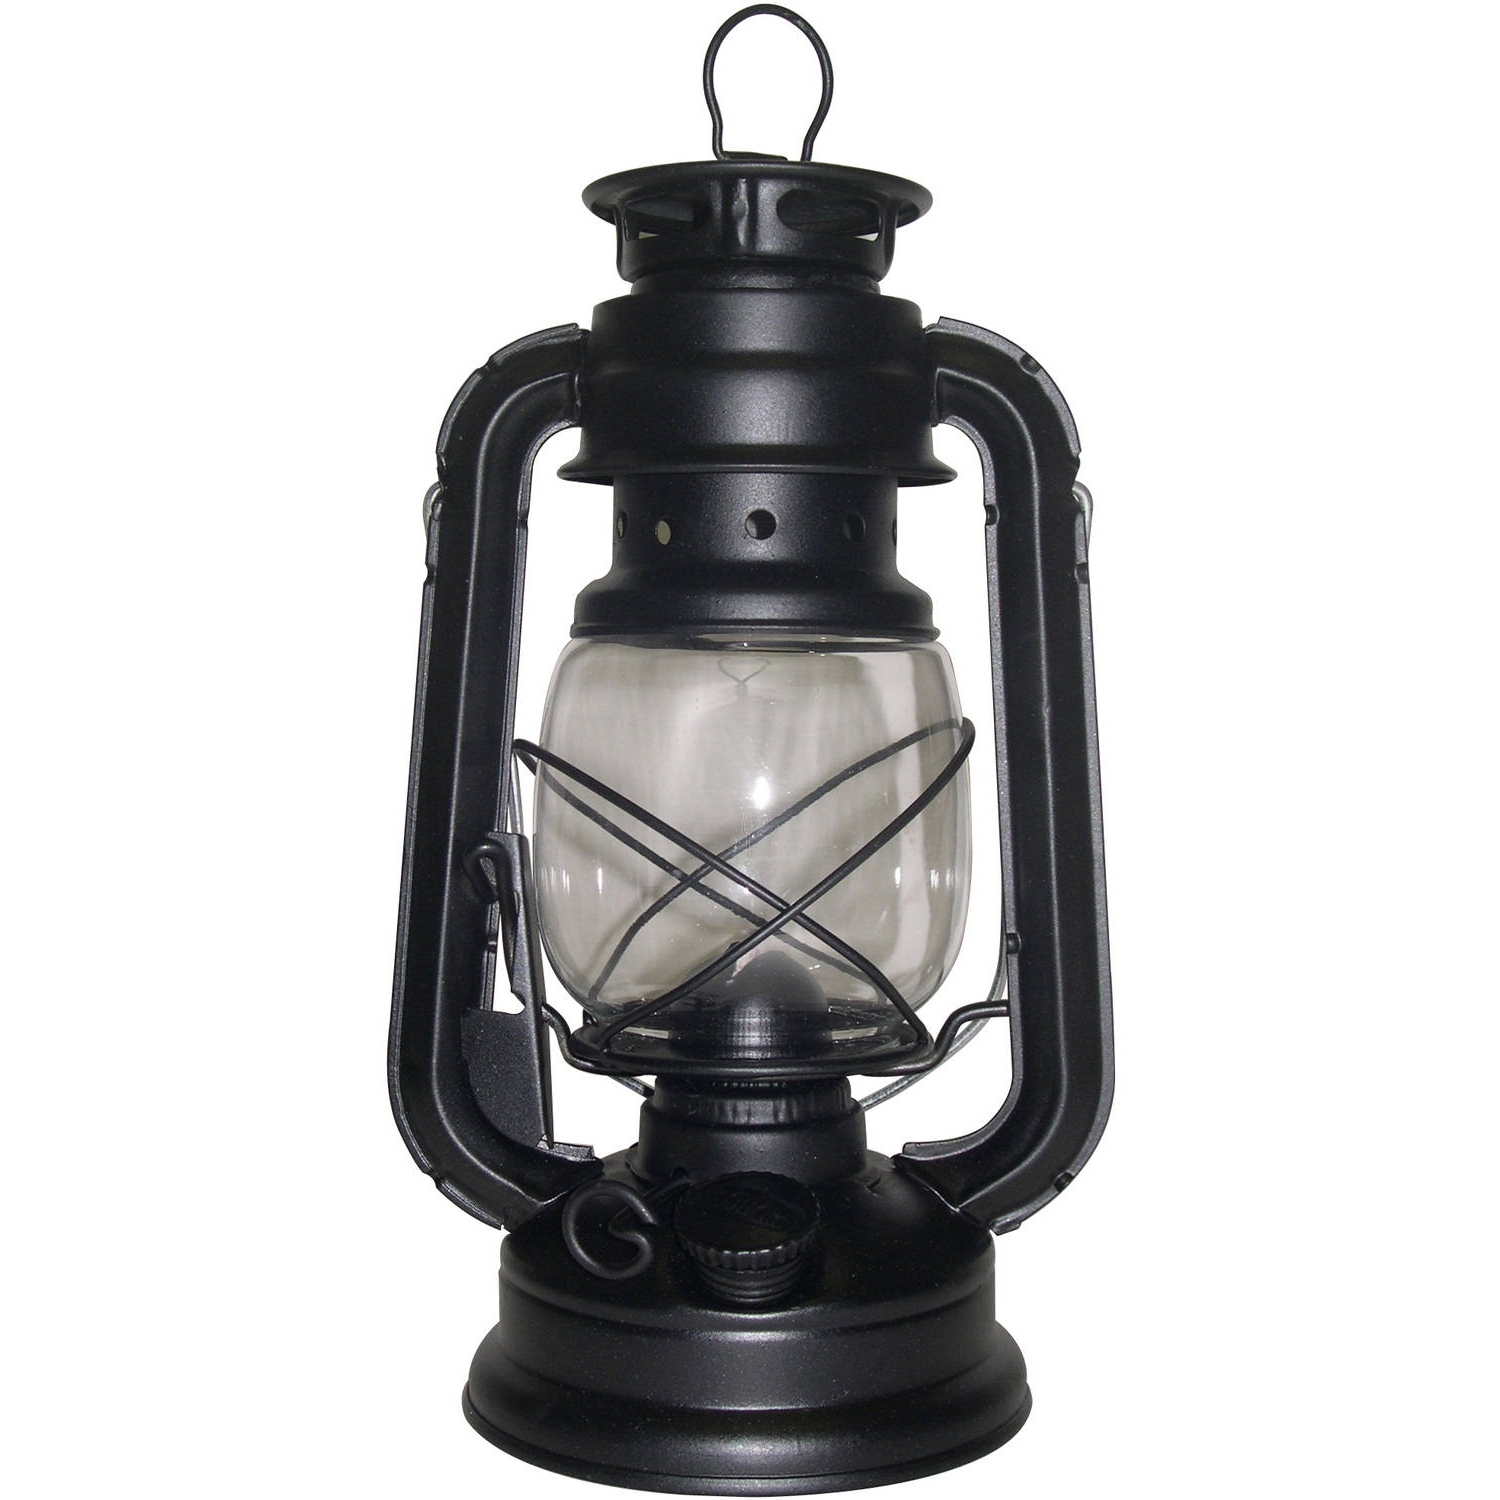 Hurricane Oil Lantern Florasense , Black Original Top Quality Indoor Regarding Widely Used Quality Outdoor Lanterns (View 6 of 20)